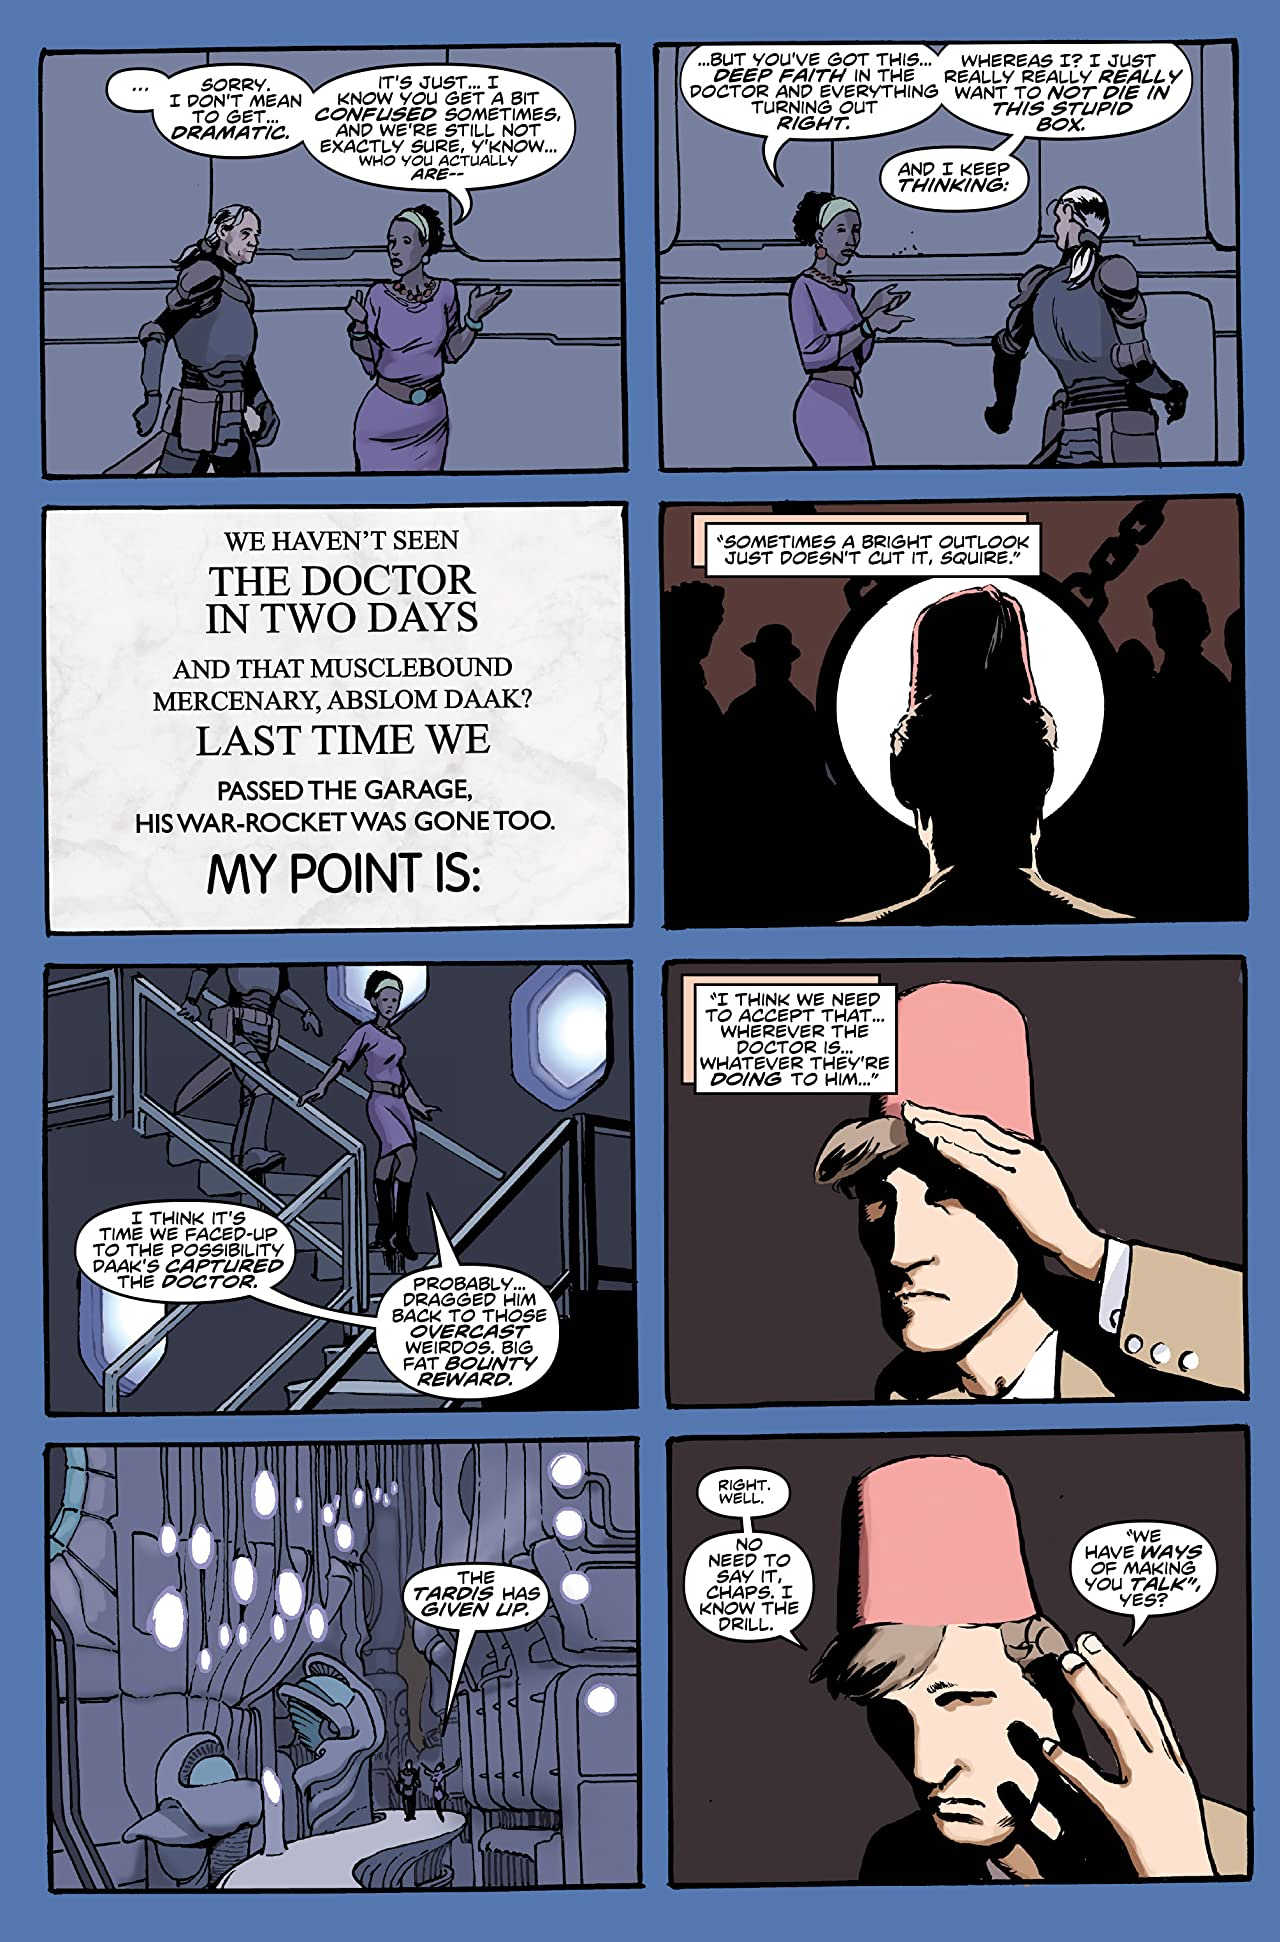 Doctor Who: The Eleventh Doctor No.2.3